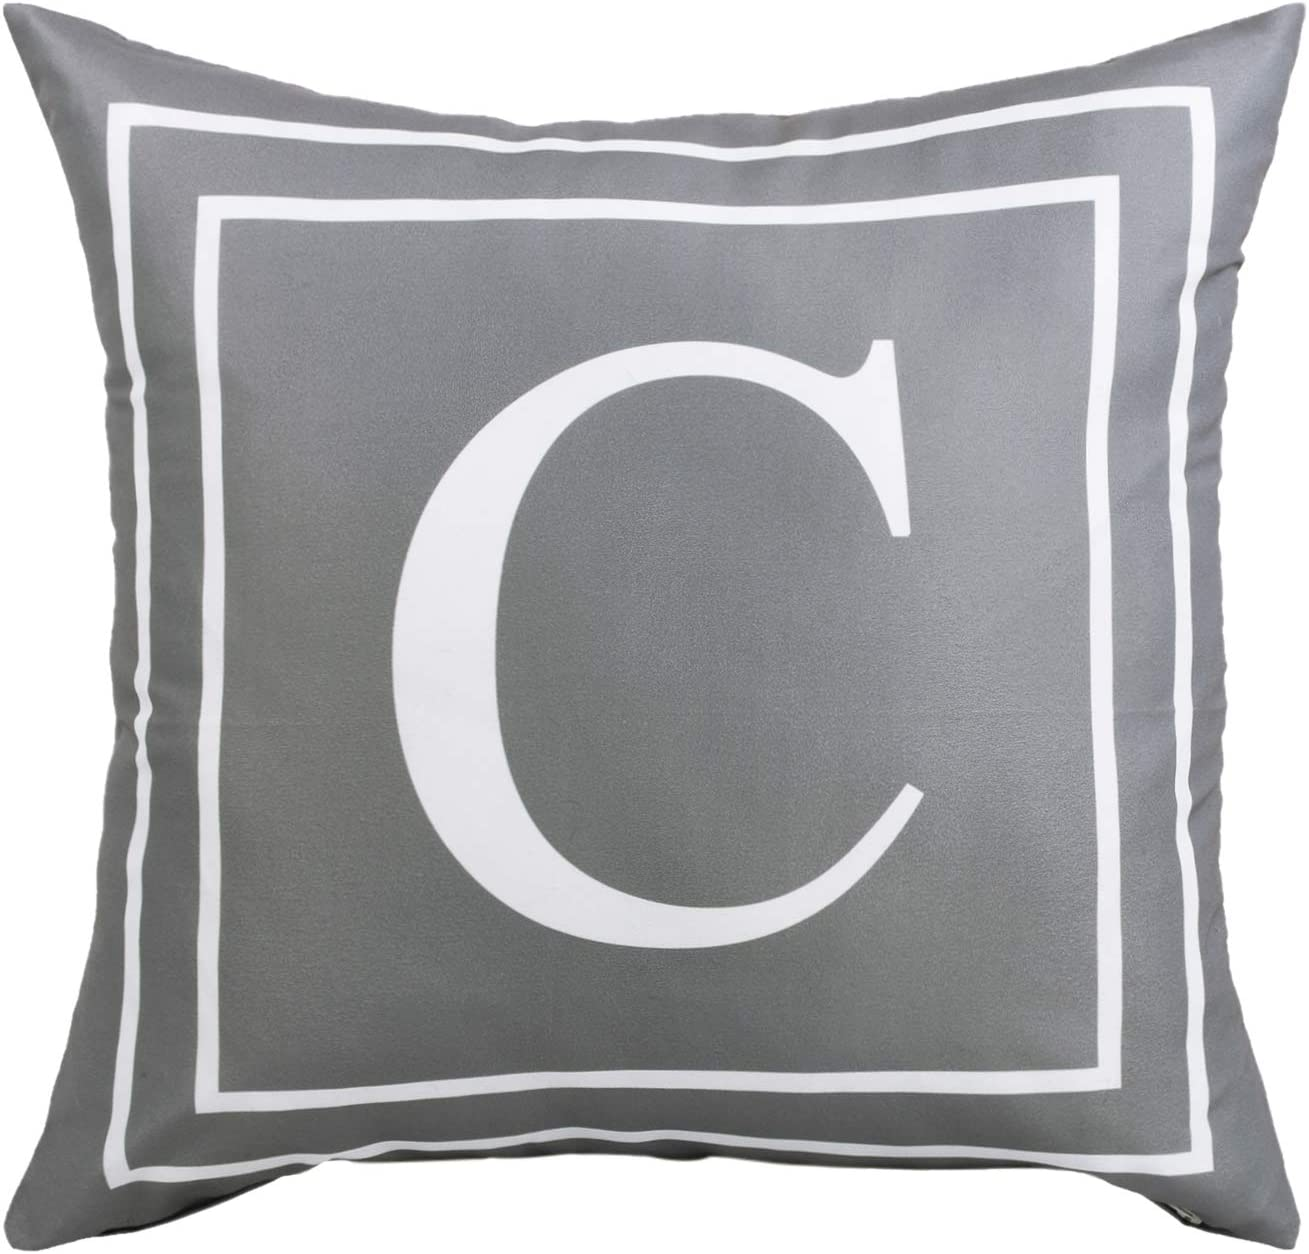 Fascidorm Gray Pillow Cover English Alphabet C Throw Pillow Case Modern Cushion Cover Square Pillowcase Decoration for Sofa Bed Chair Car 20 x 20 Inch